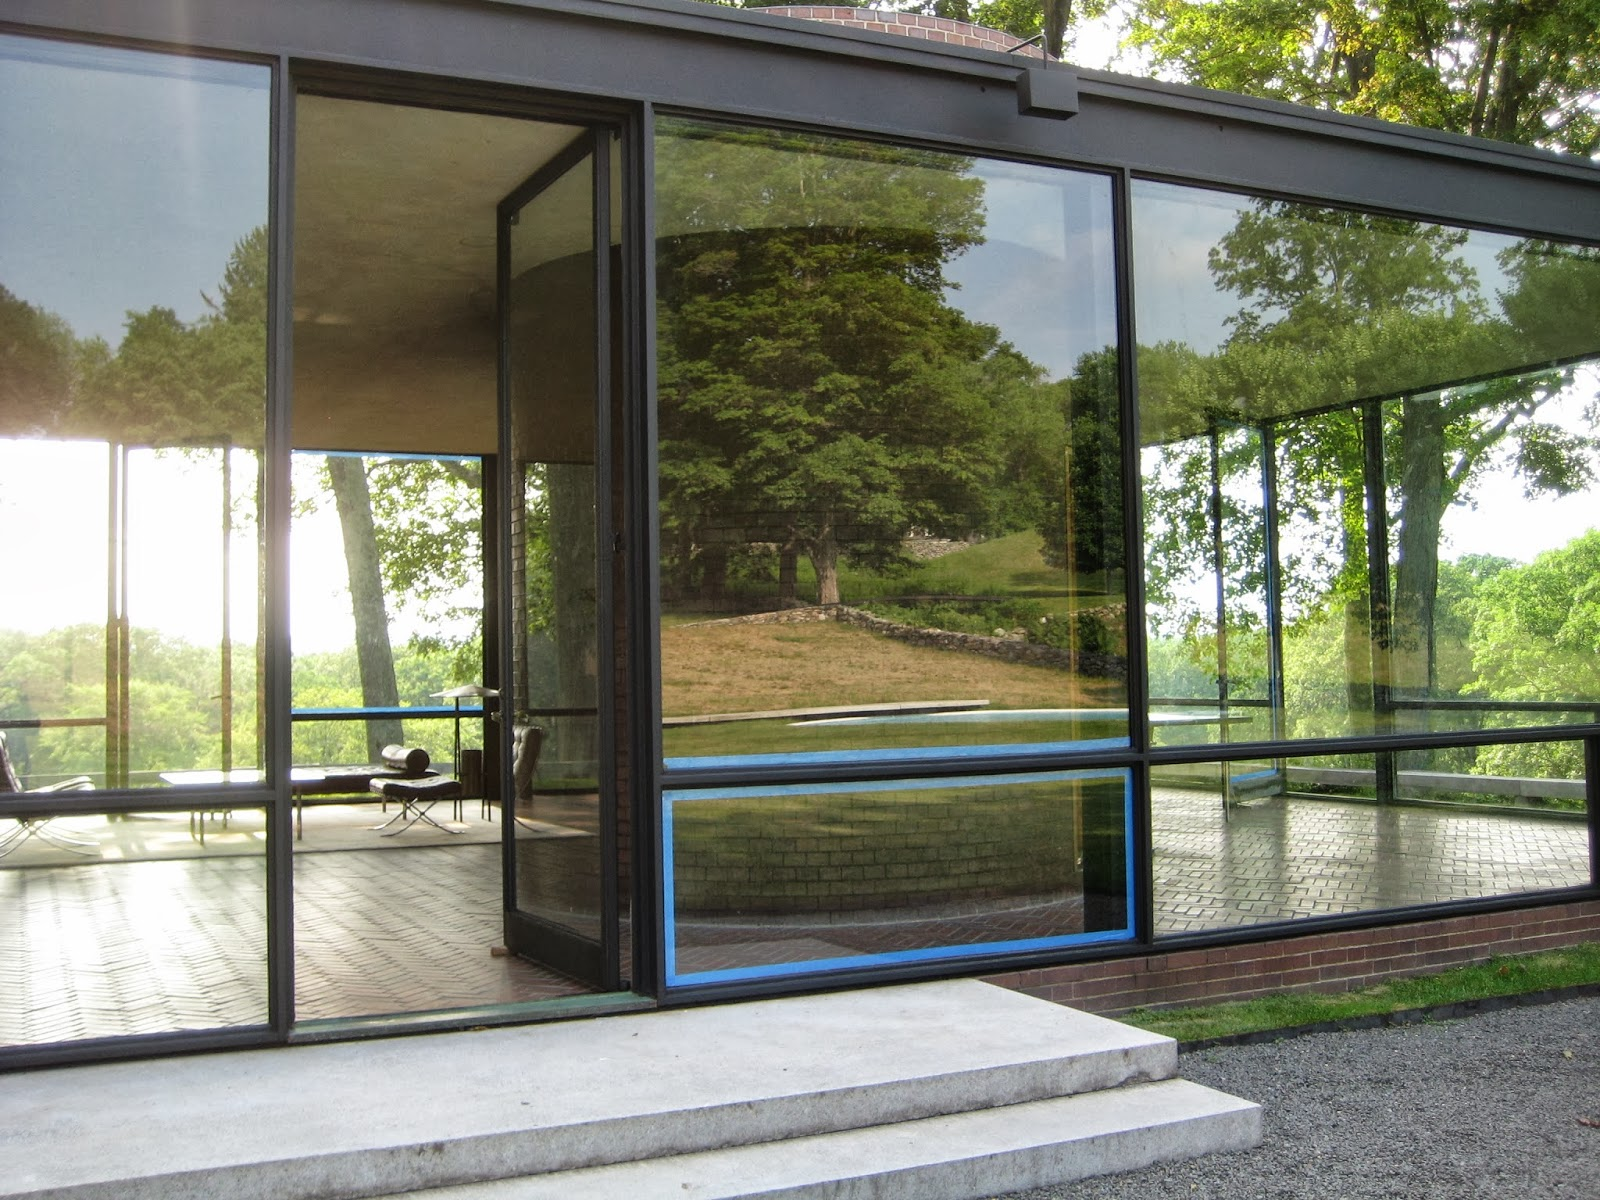 Glass Windows For Homes : Design context ougd brief research into light and